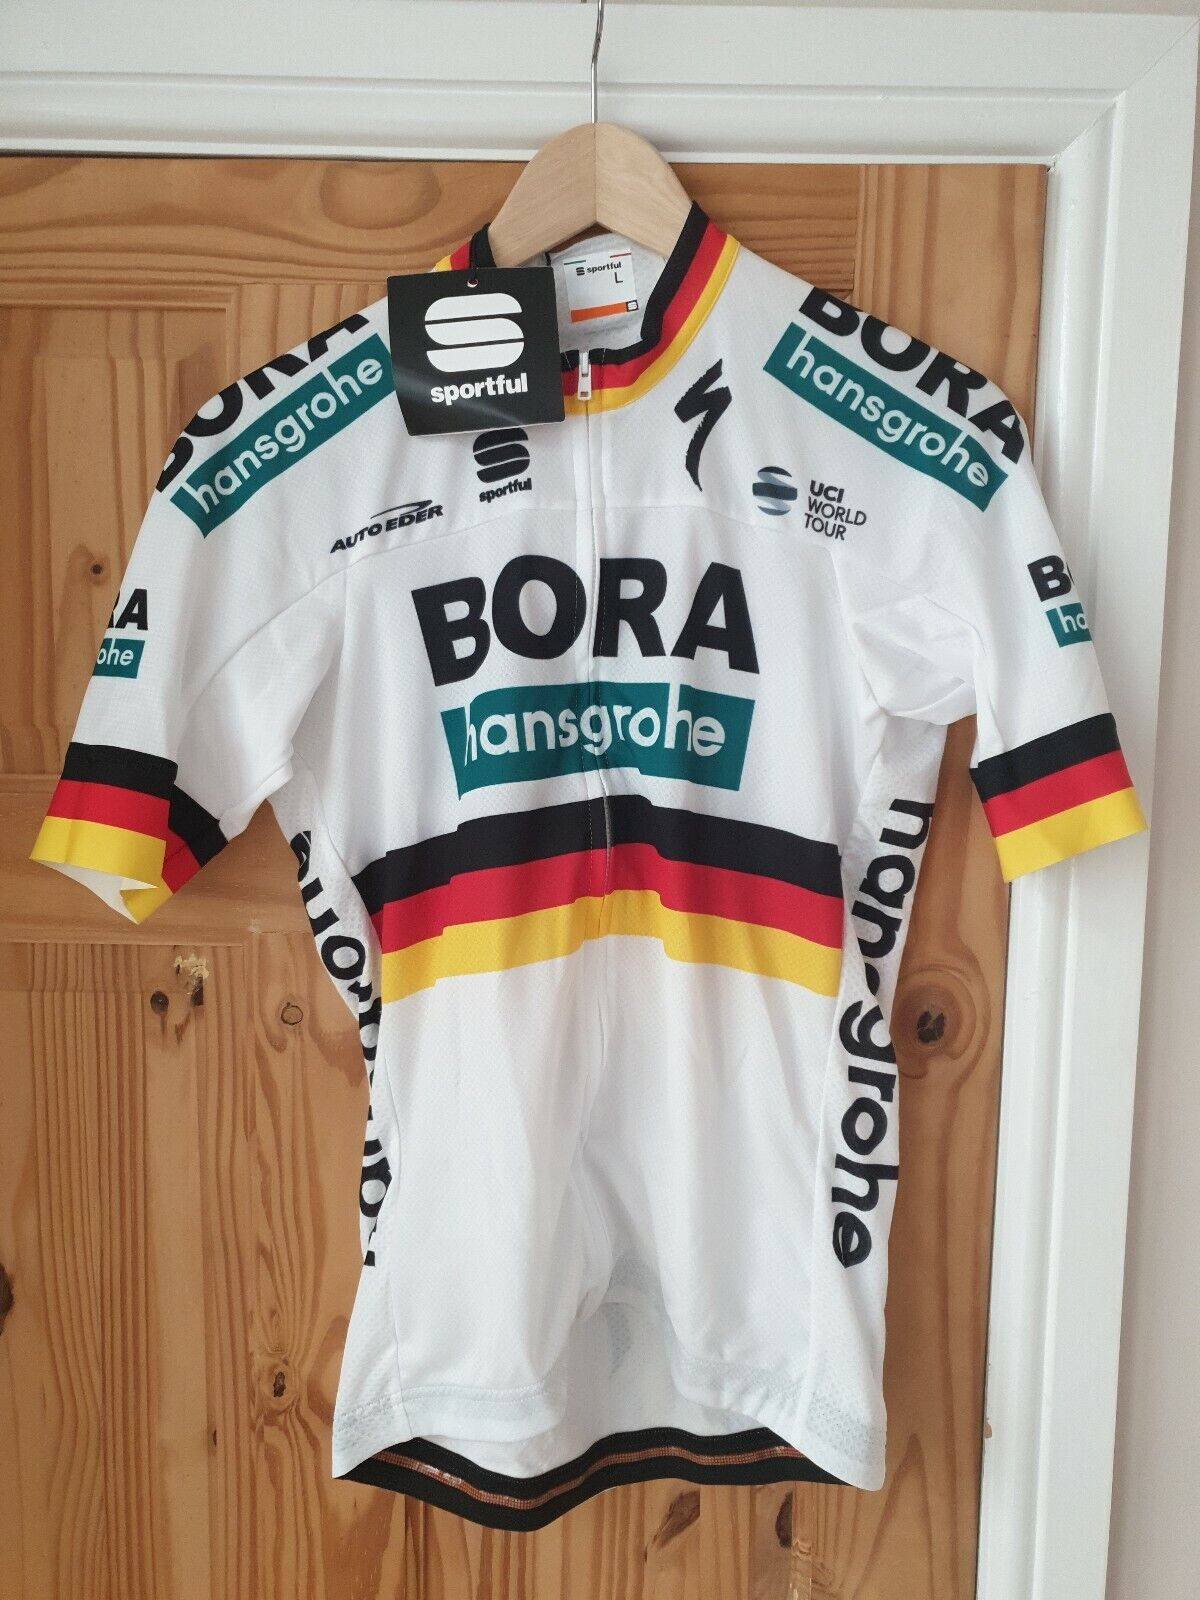 Deportes  Bora hansgrohe, Body FIT, BF Team pro Thermal Jersey, L 35, Box 47.